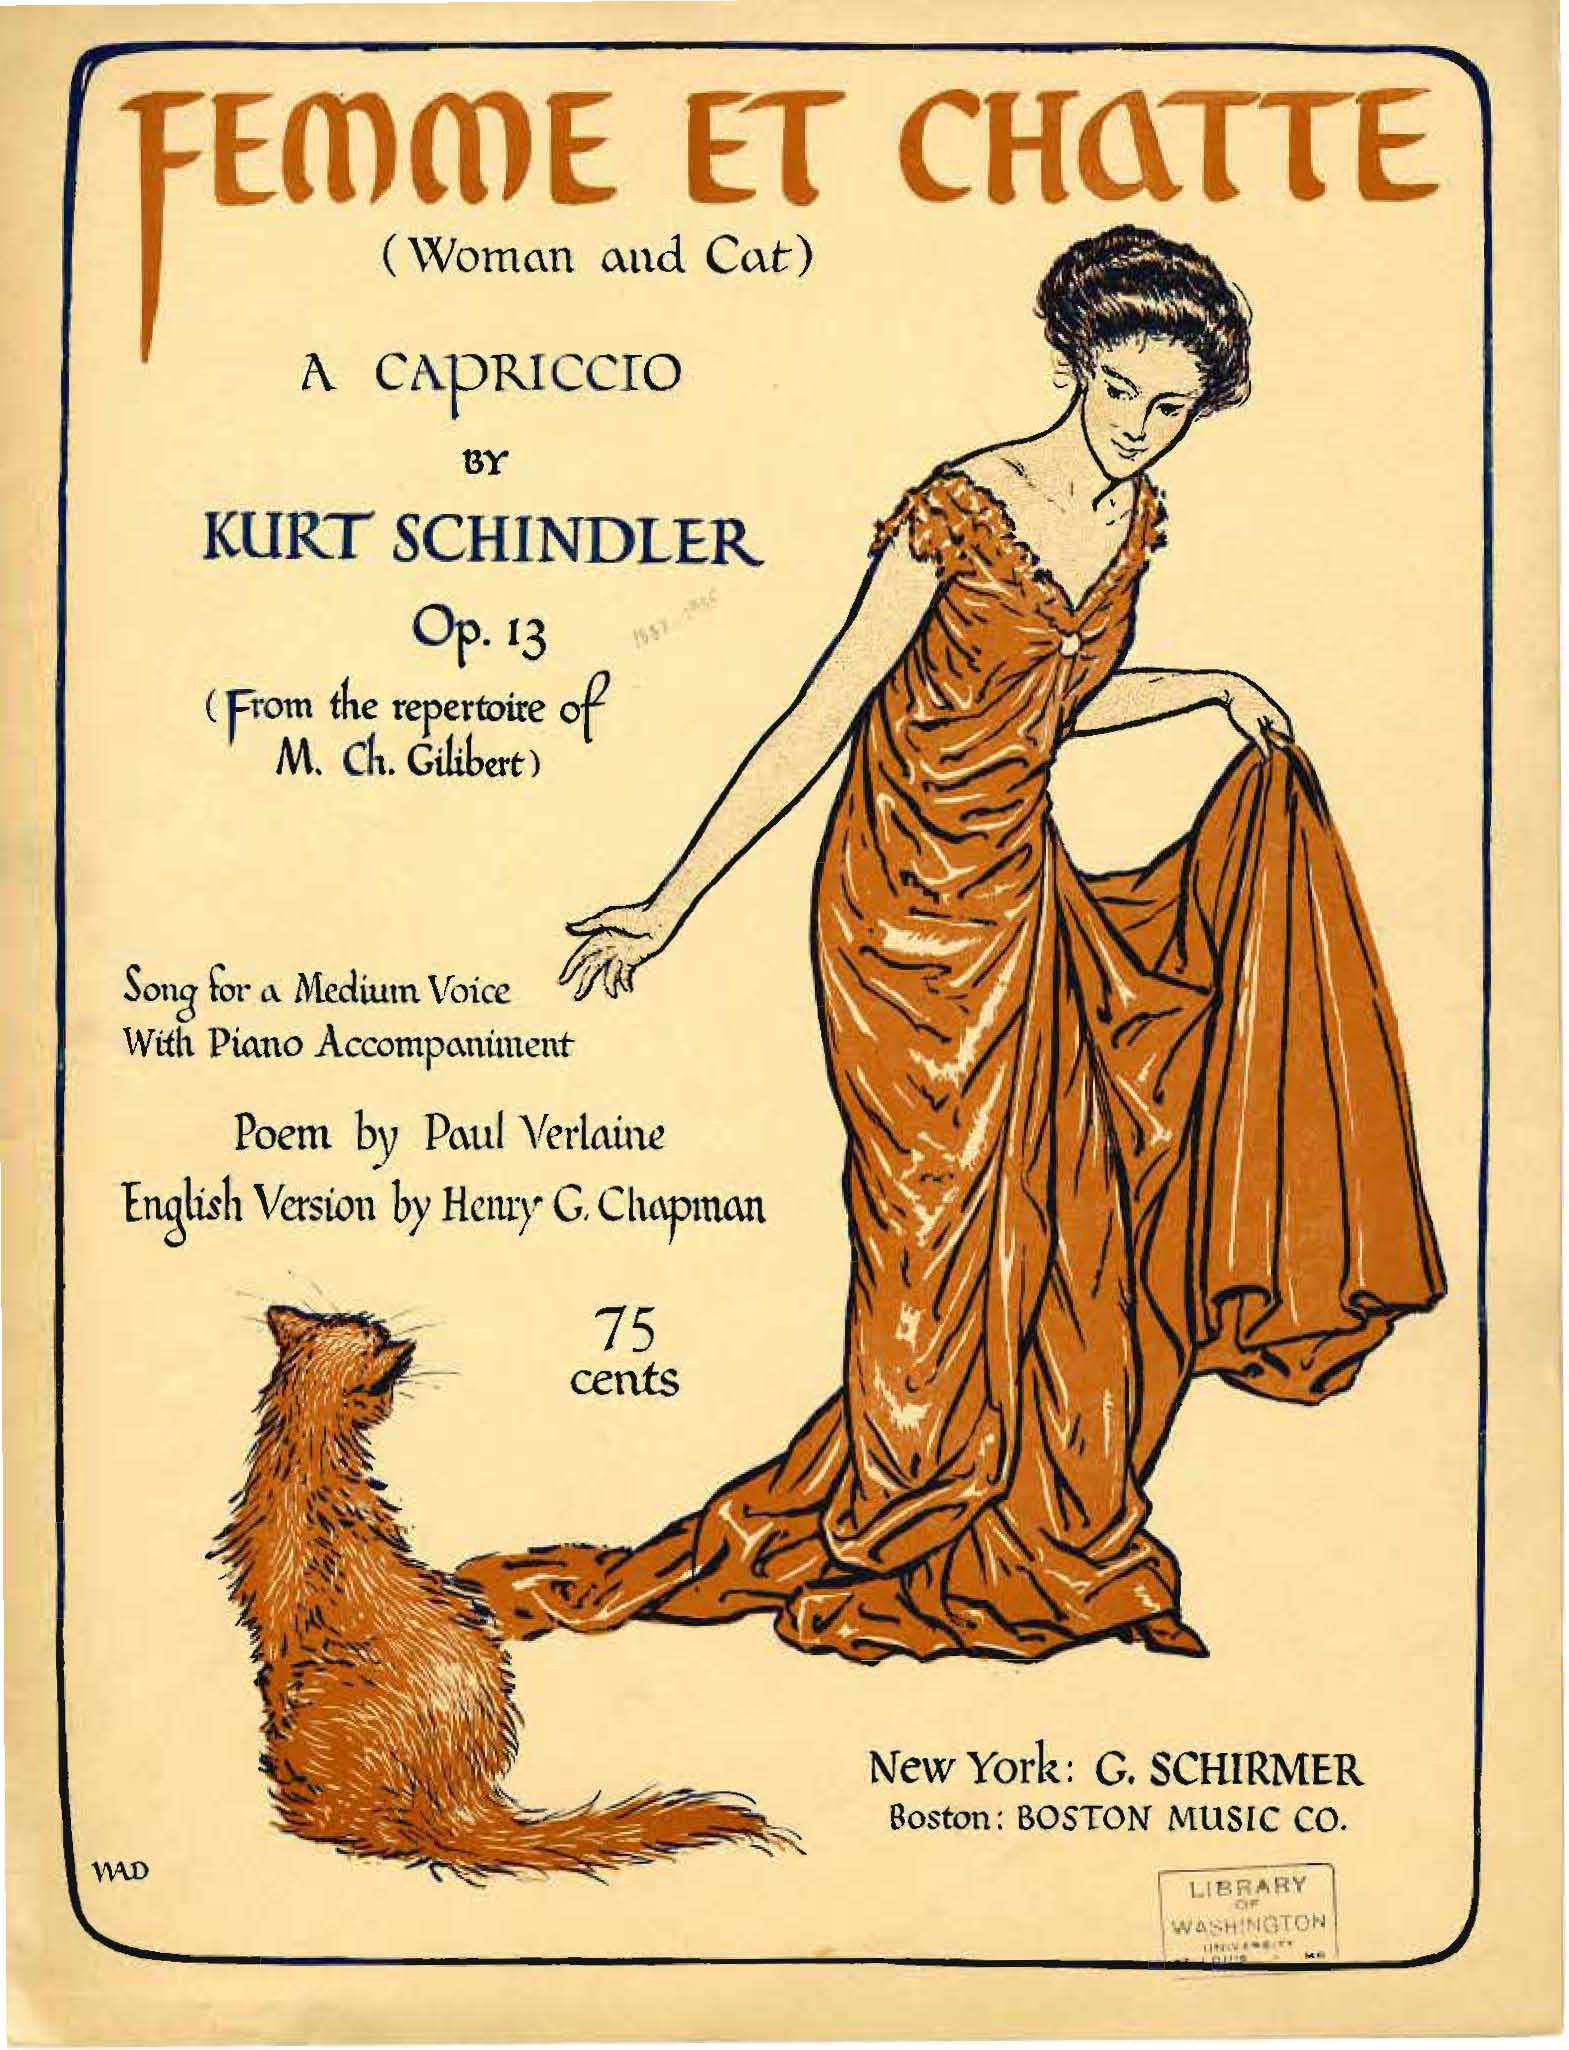 Femme et Chatte by Kurt Schindler (New York: G. Schirmer, 1911). Cover design, illustration and lettering by W.A. Dwiggins.